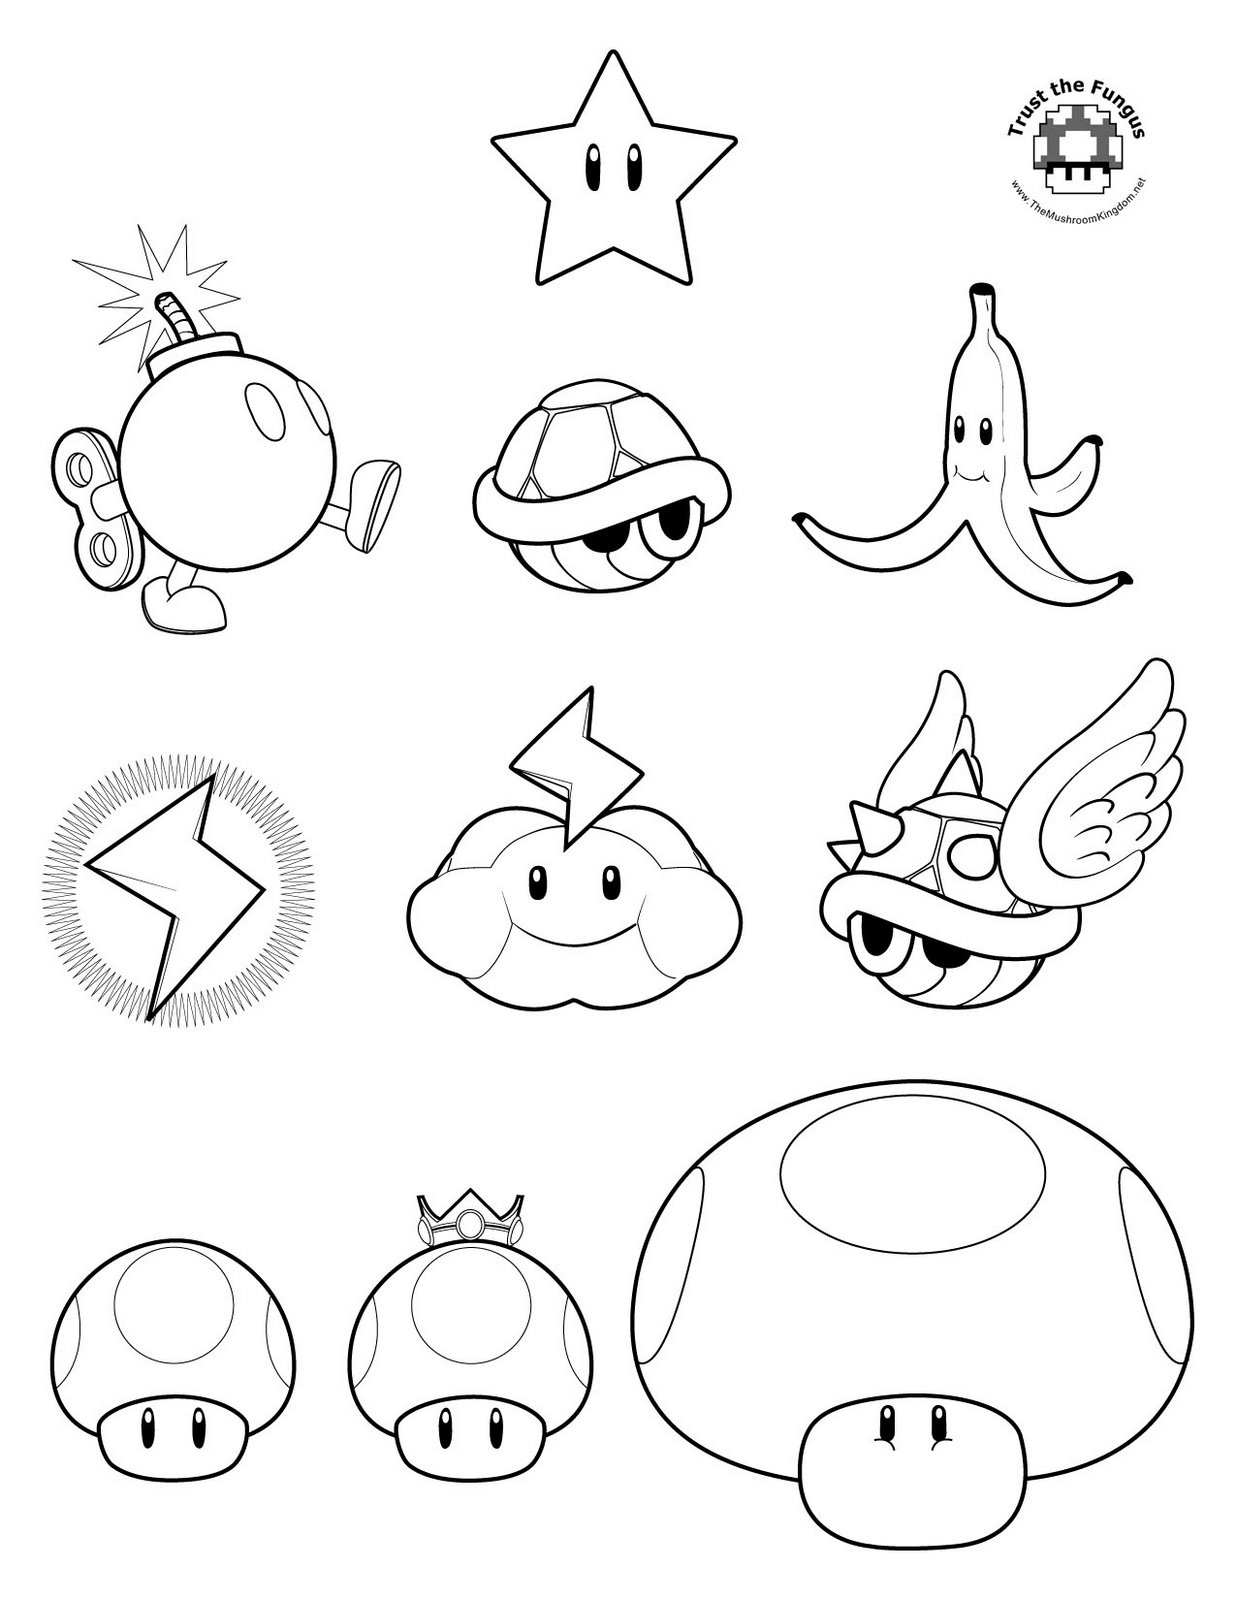 super mario world coloring pages coloring pages mario coloring pages collection 2010 world mario coloring super pages